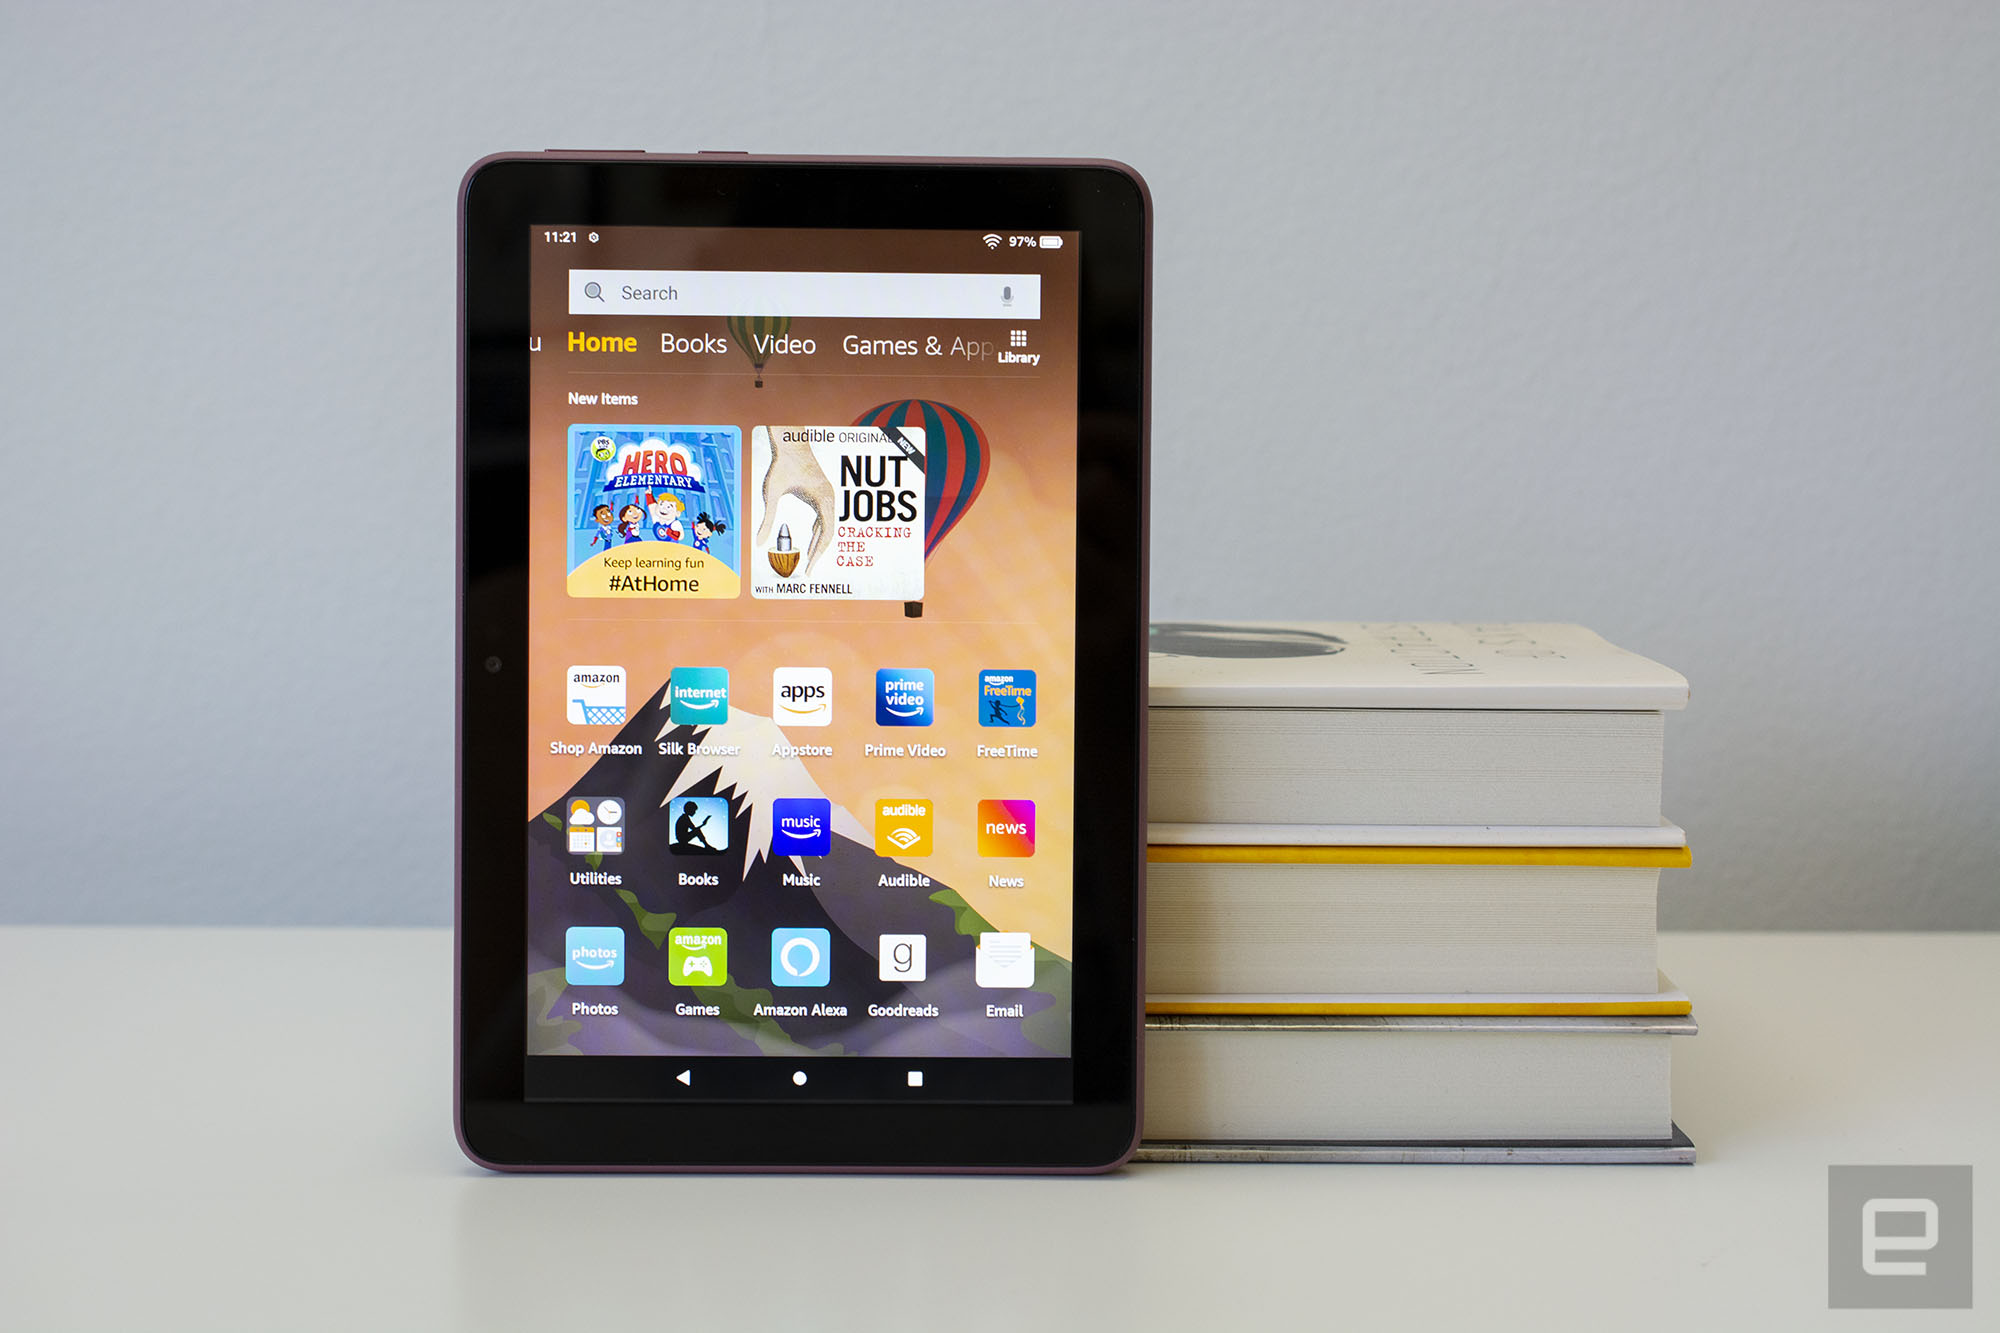 This Week S Best Deals Amazon Fire Tablets Apple Macbook Pro And More Engadget